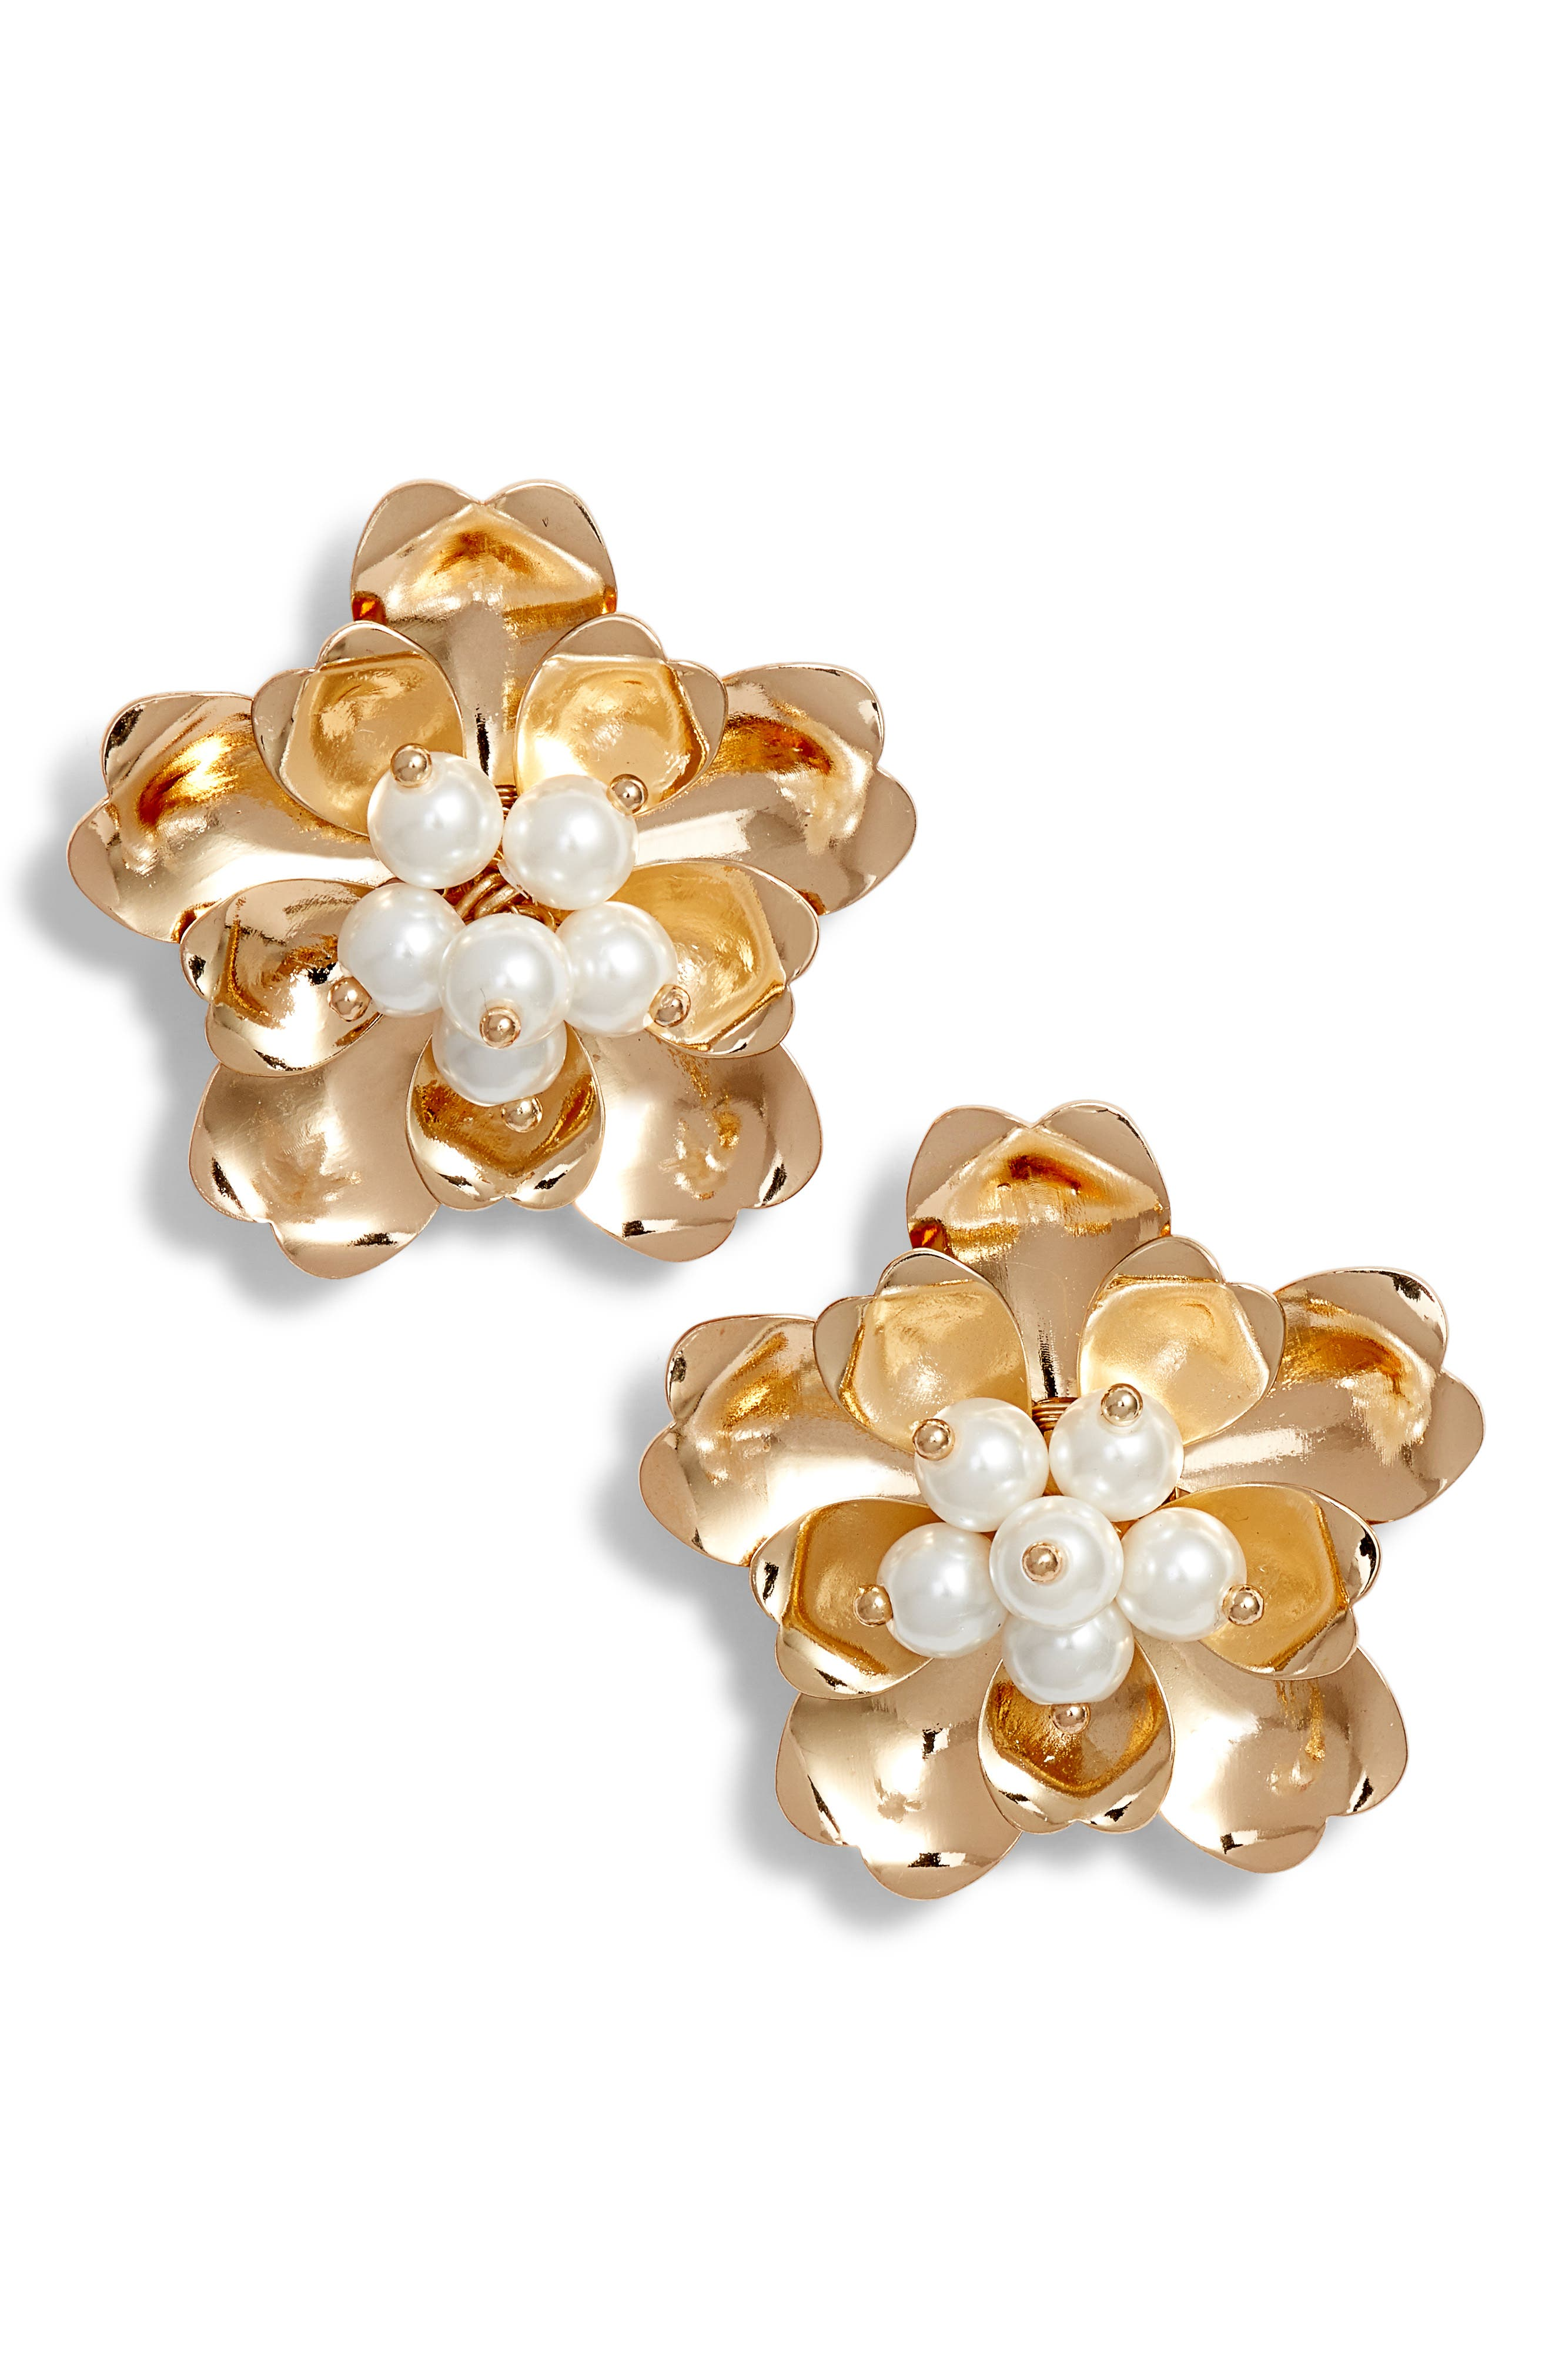 50s Jewelry: Earrings, Necklace, Brooch, Bracelet Womens Rachel Parcell Dimensional Floral Stud Earrings Nordstrom Exclusive $20.98 AT vintagedancer.com